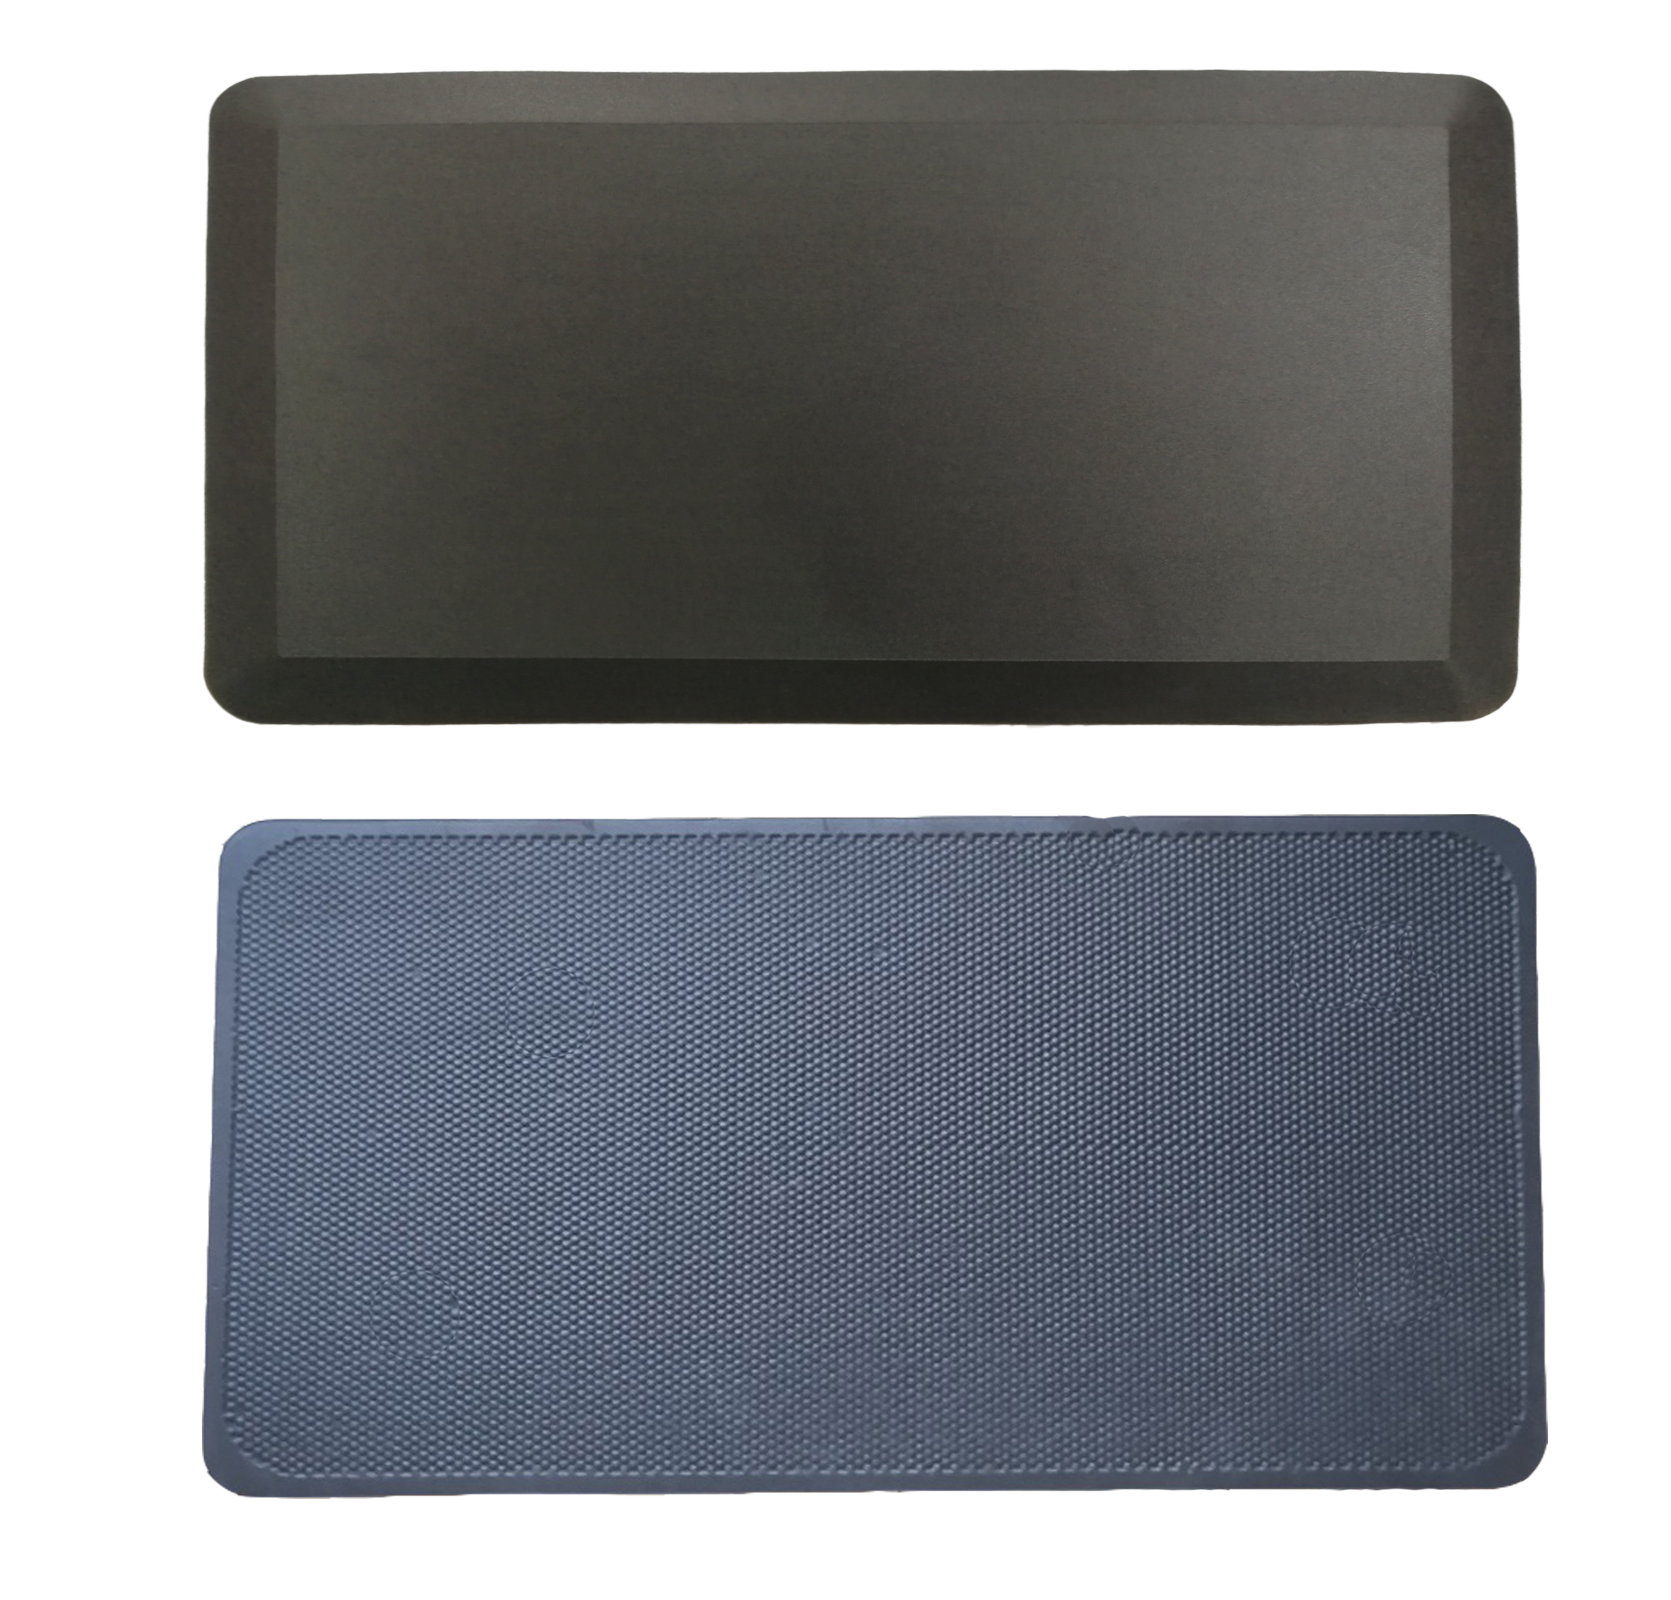 China OEM High Quality Anti fatigue Durable Waterproof Polyurethane Wellness Kitchen Mats